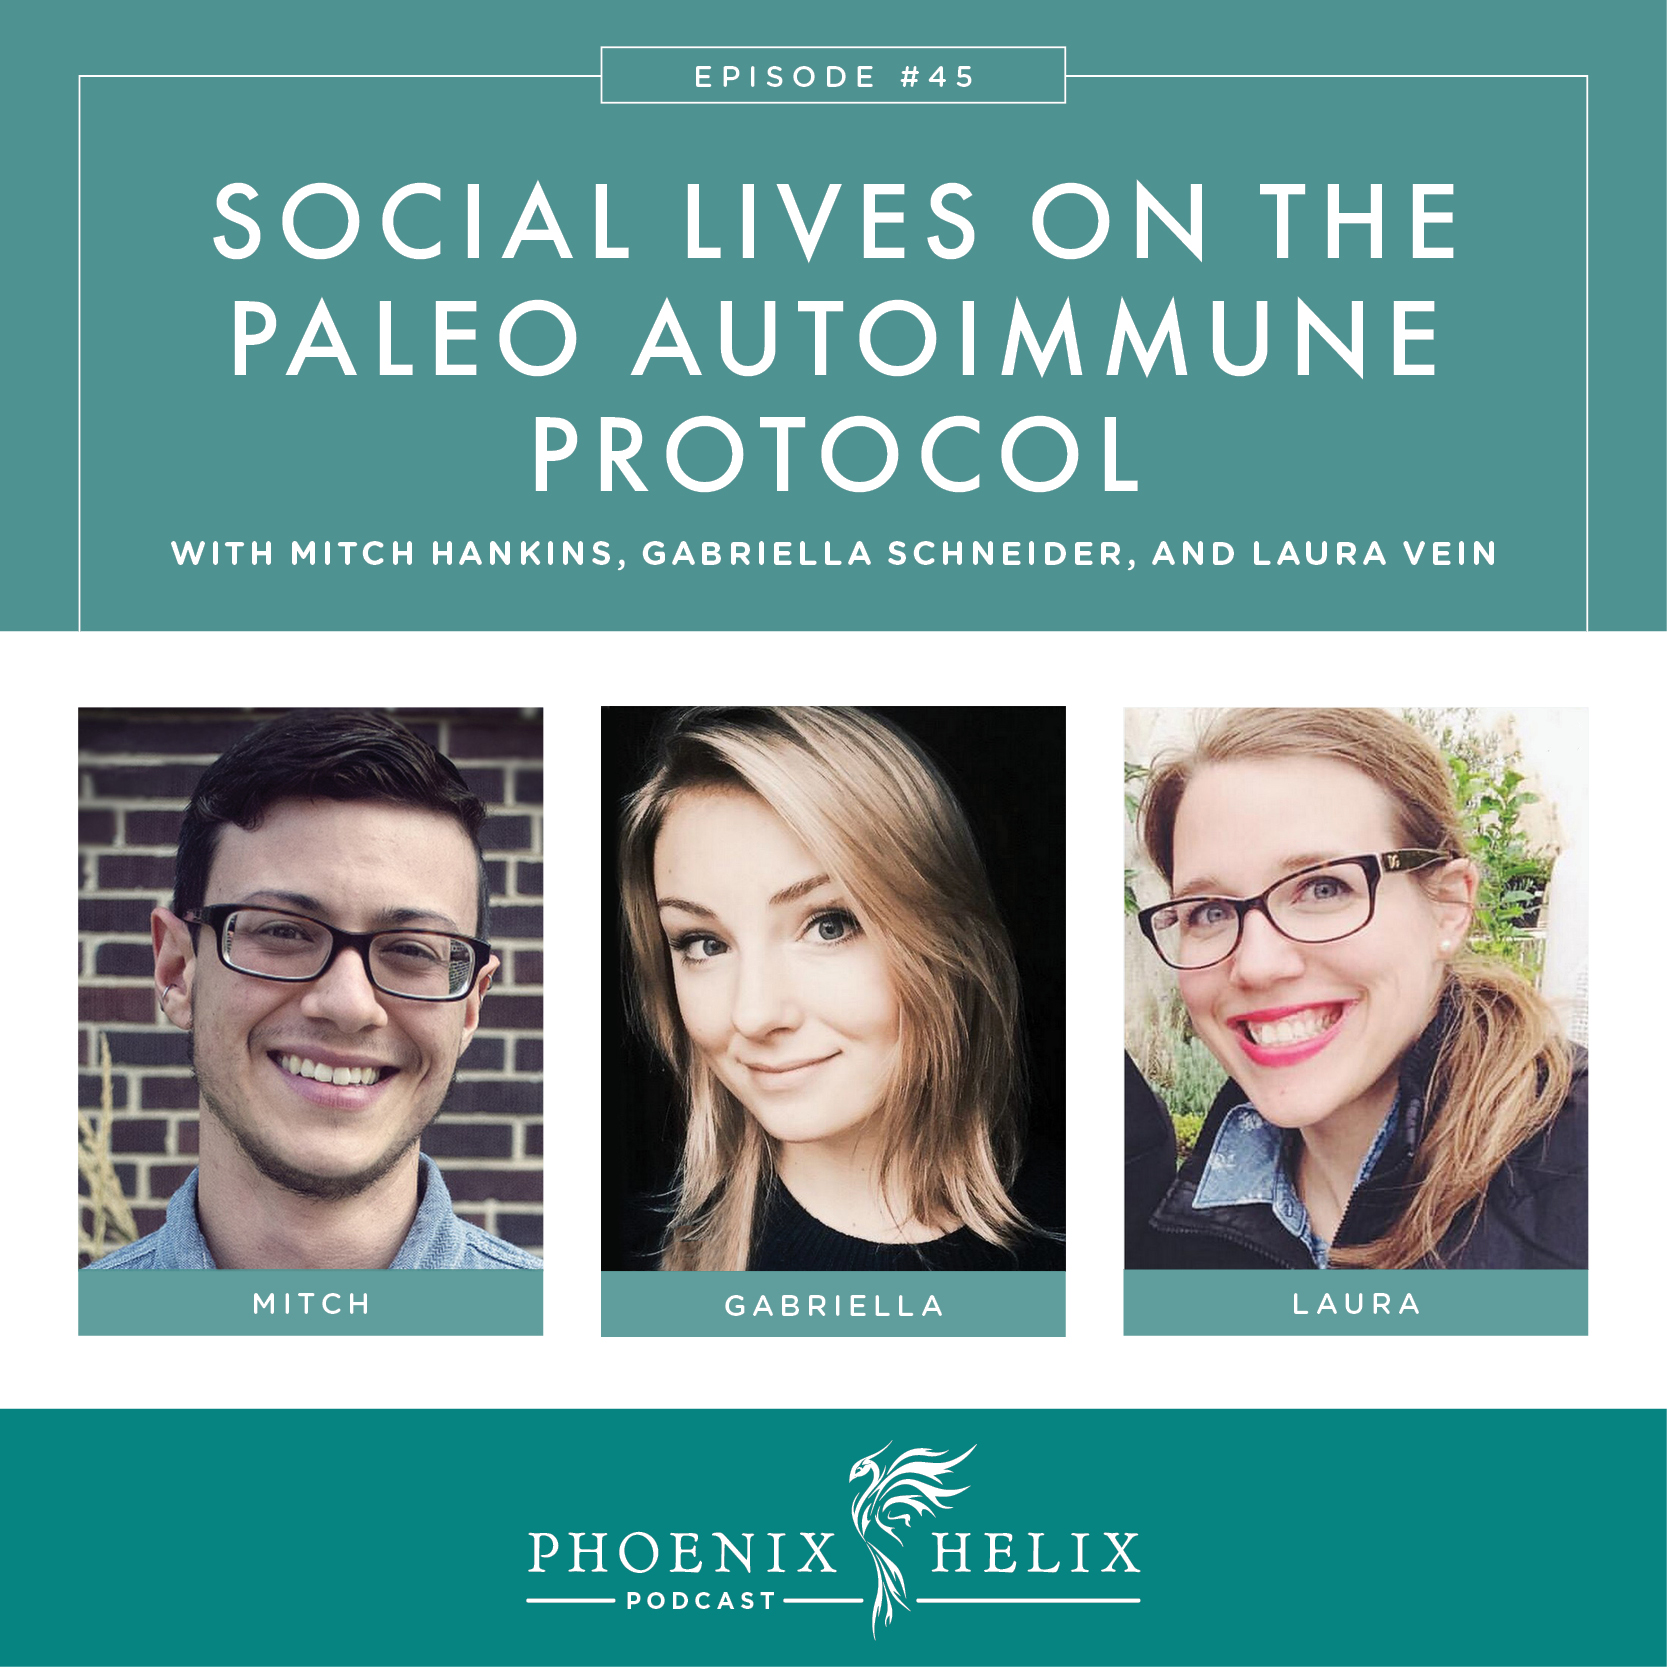 Best of the Phoenix Helix Podcast: Social Lives on the Paleo Autoimmune Protocol